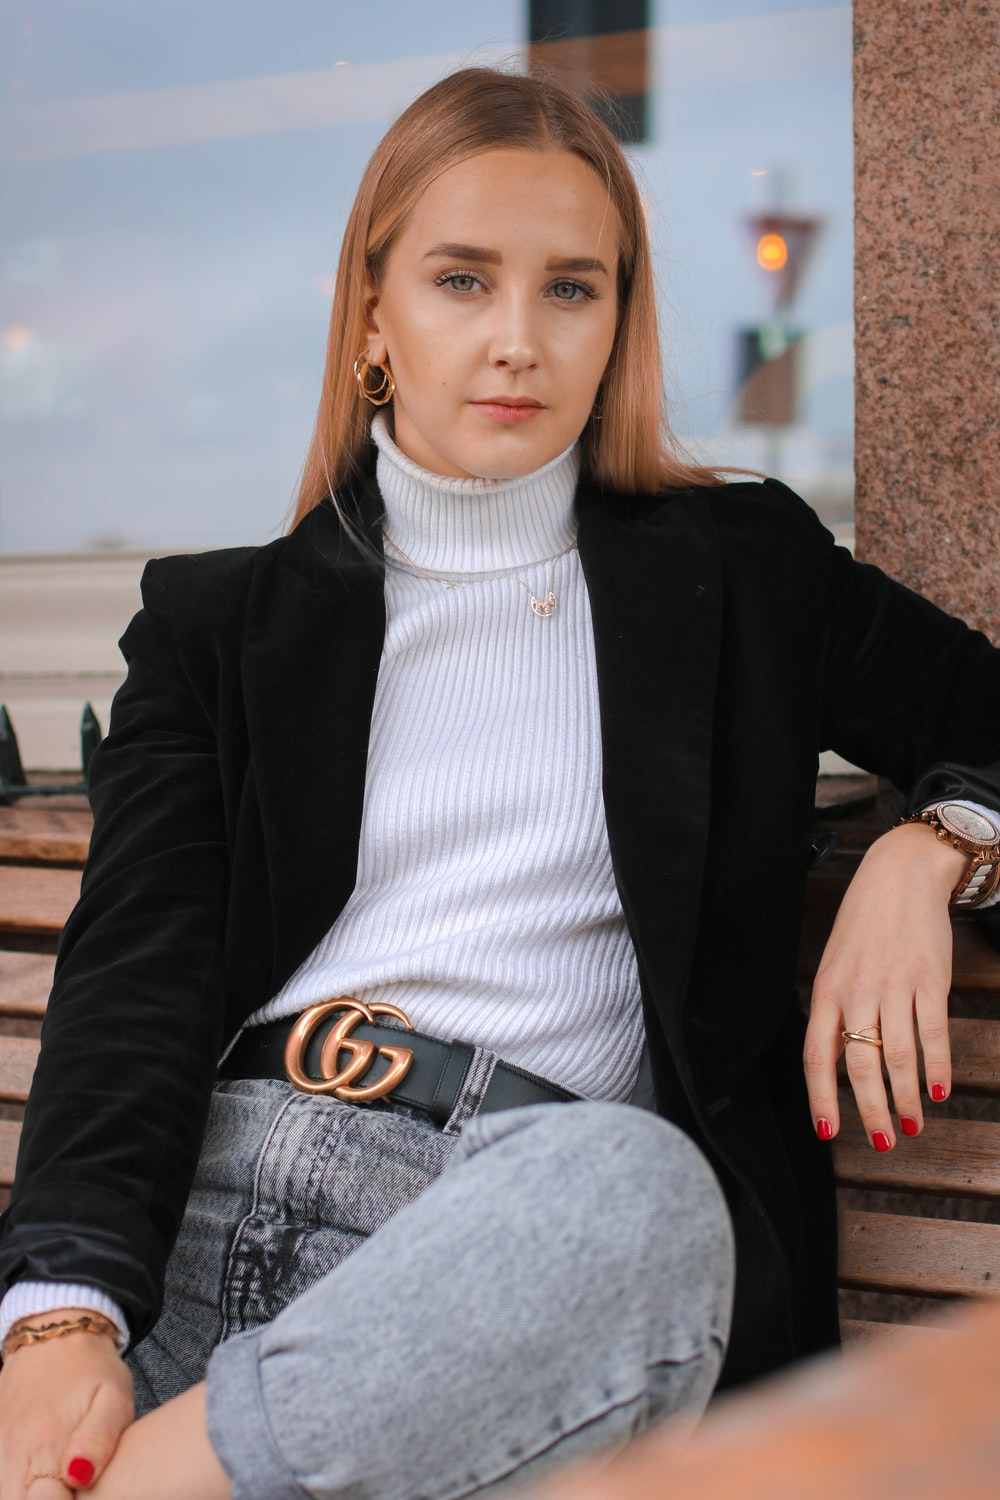 woman sits on bench